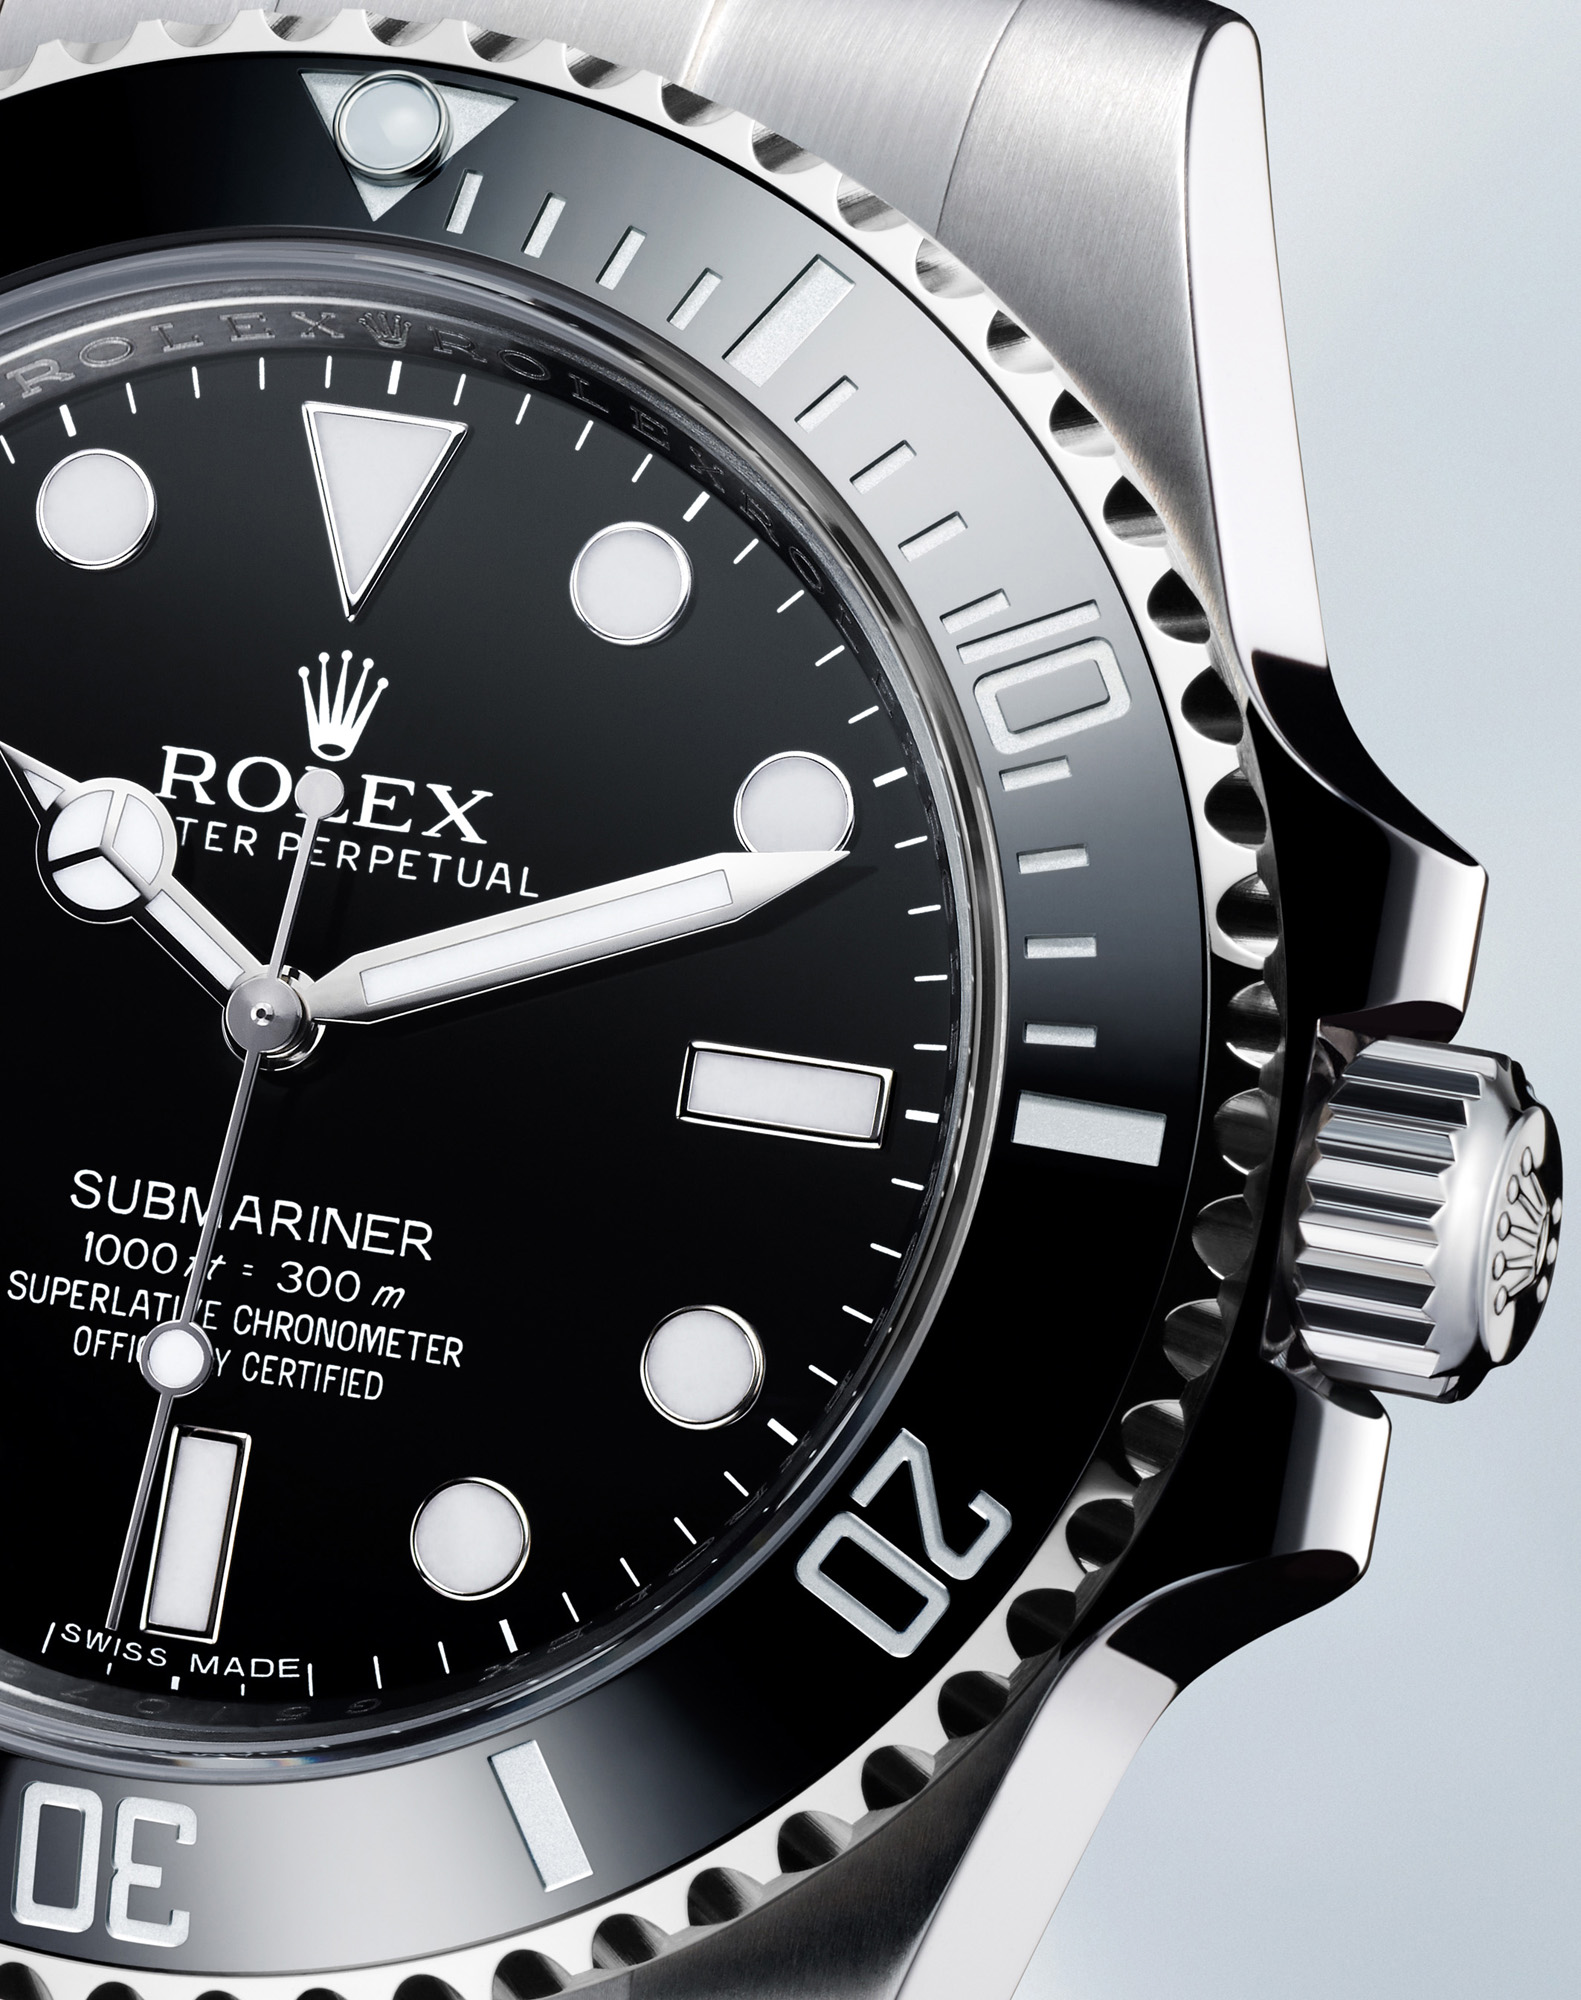 Rolex Submariner Ref. 114060 replica